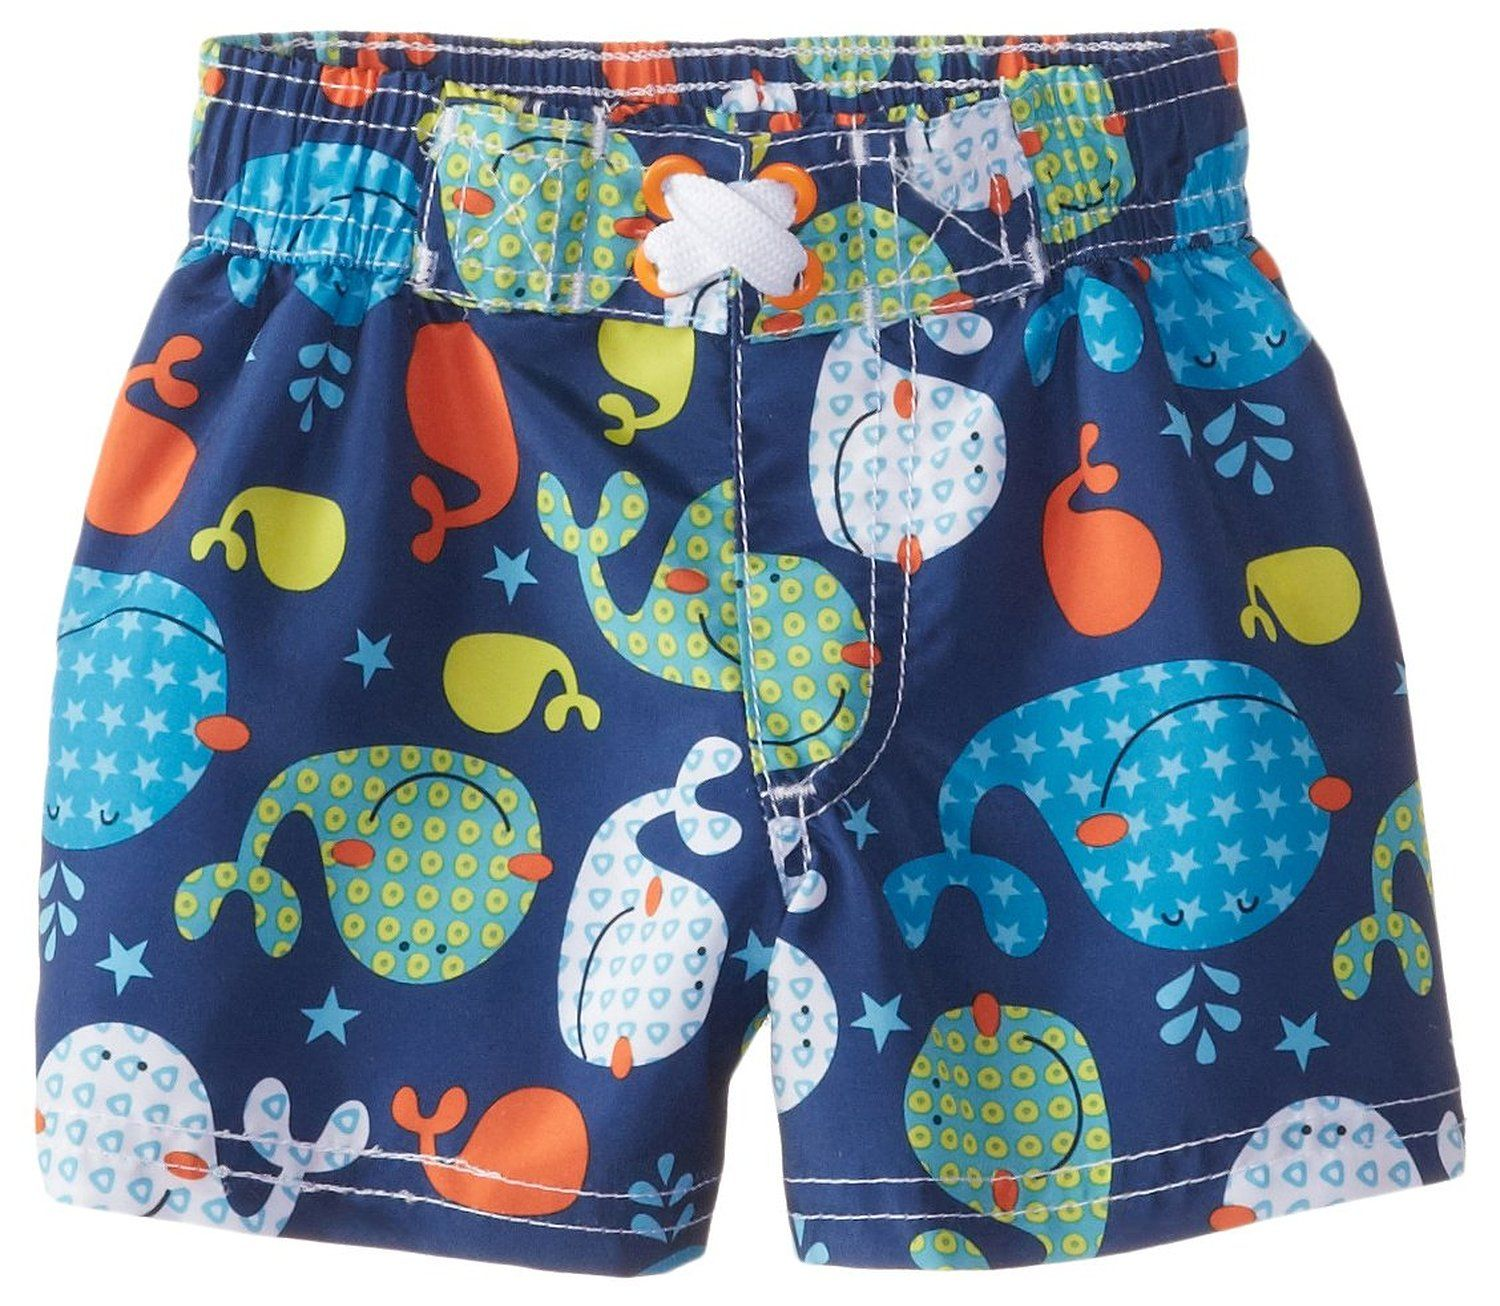 Sears Baby Clothes Amusing Whale Swim Trunks At Sears $11  Baby  Clothes  Pinterest  Swim